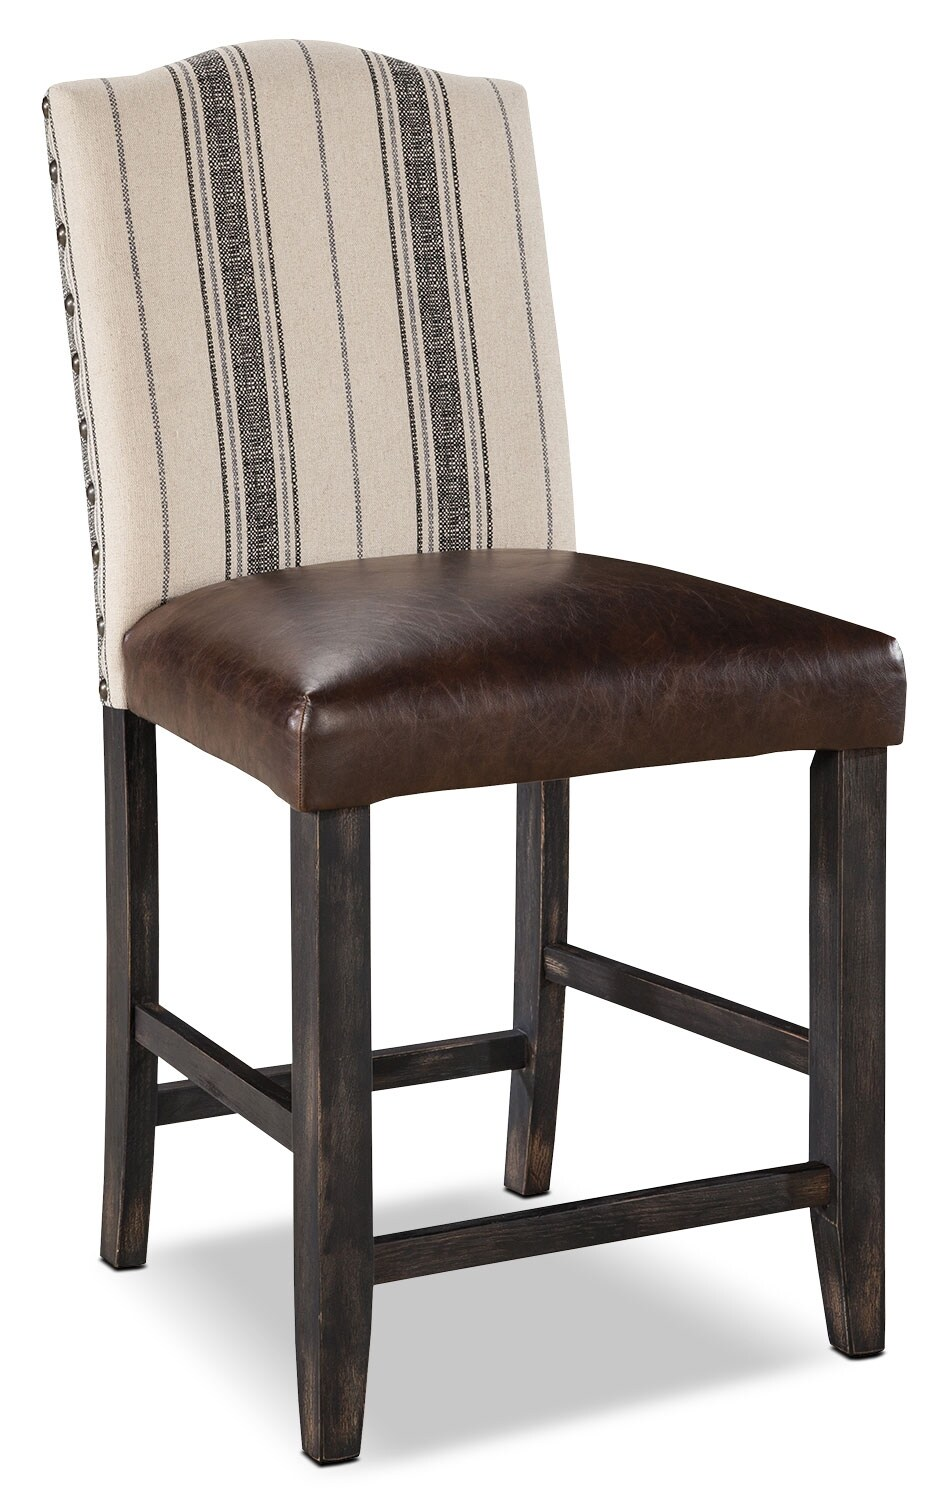 Moriann Linen and Faux Leather Counter-Height Stool - Dark Brown